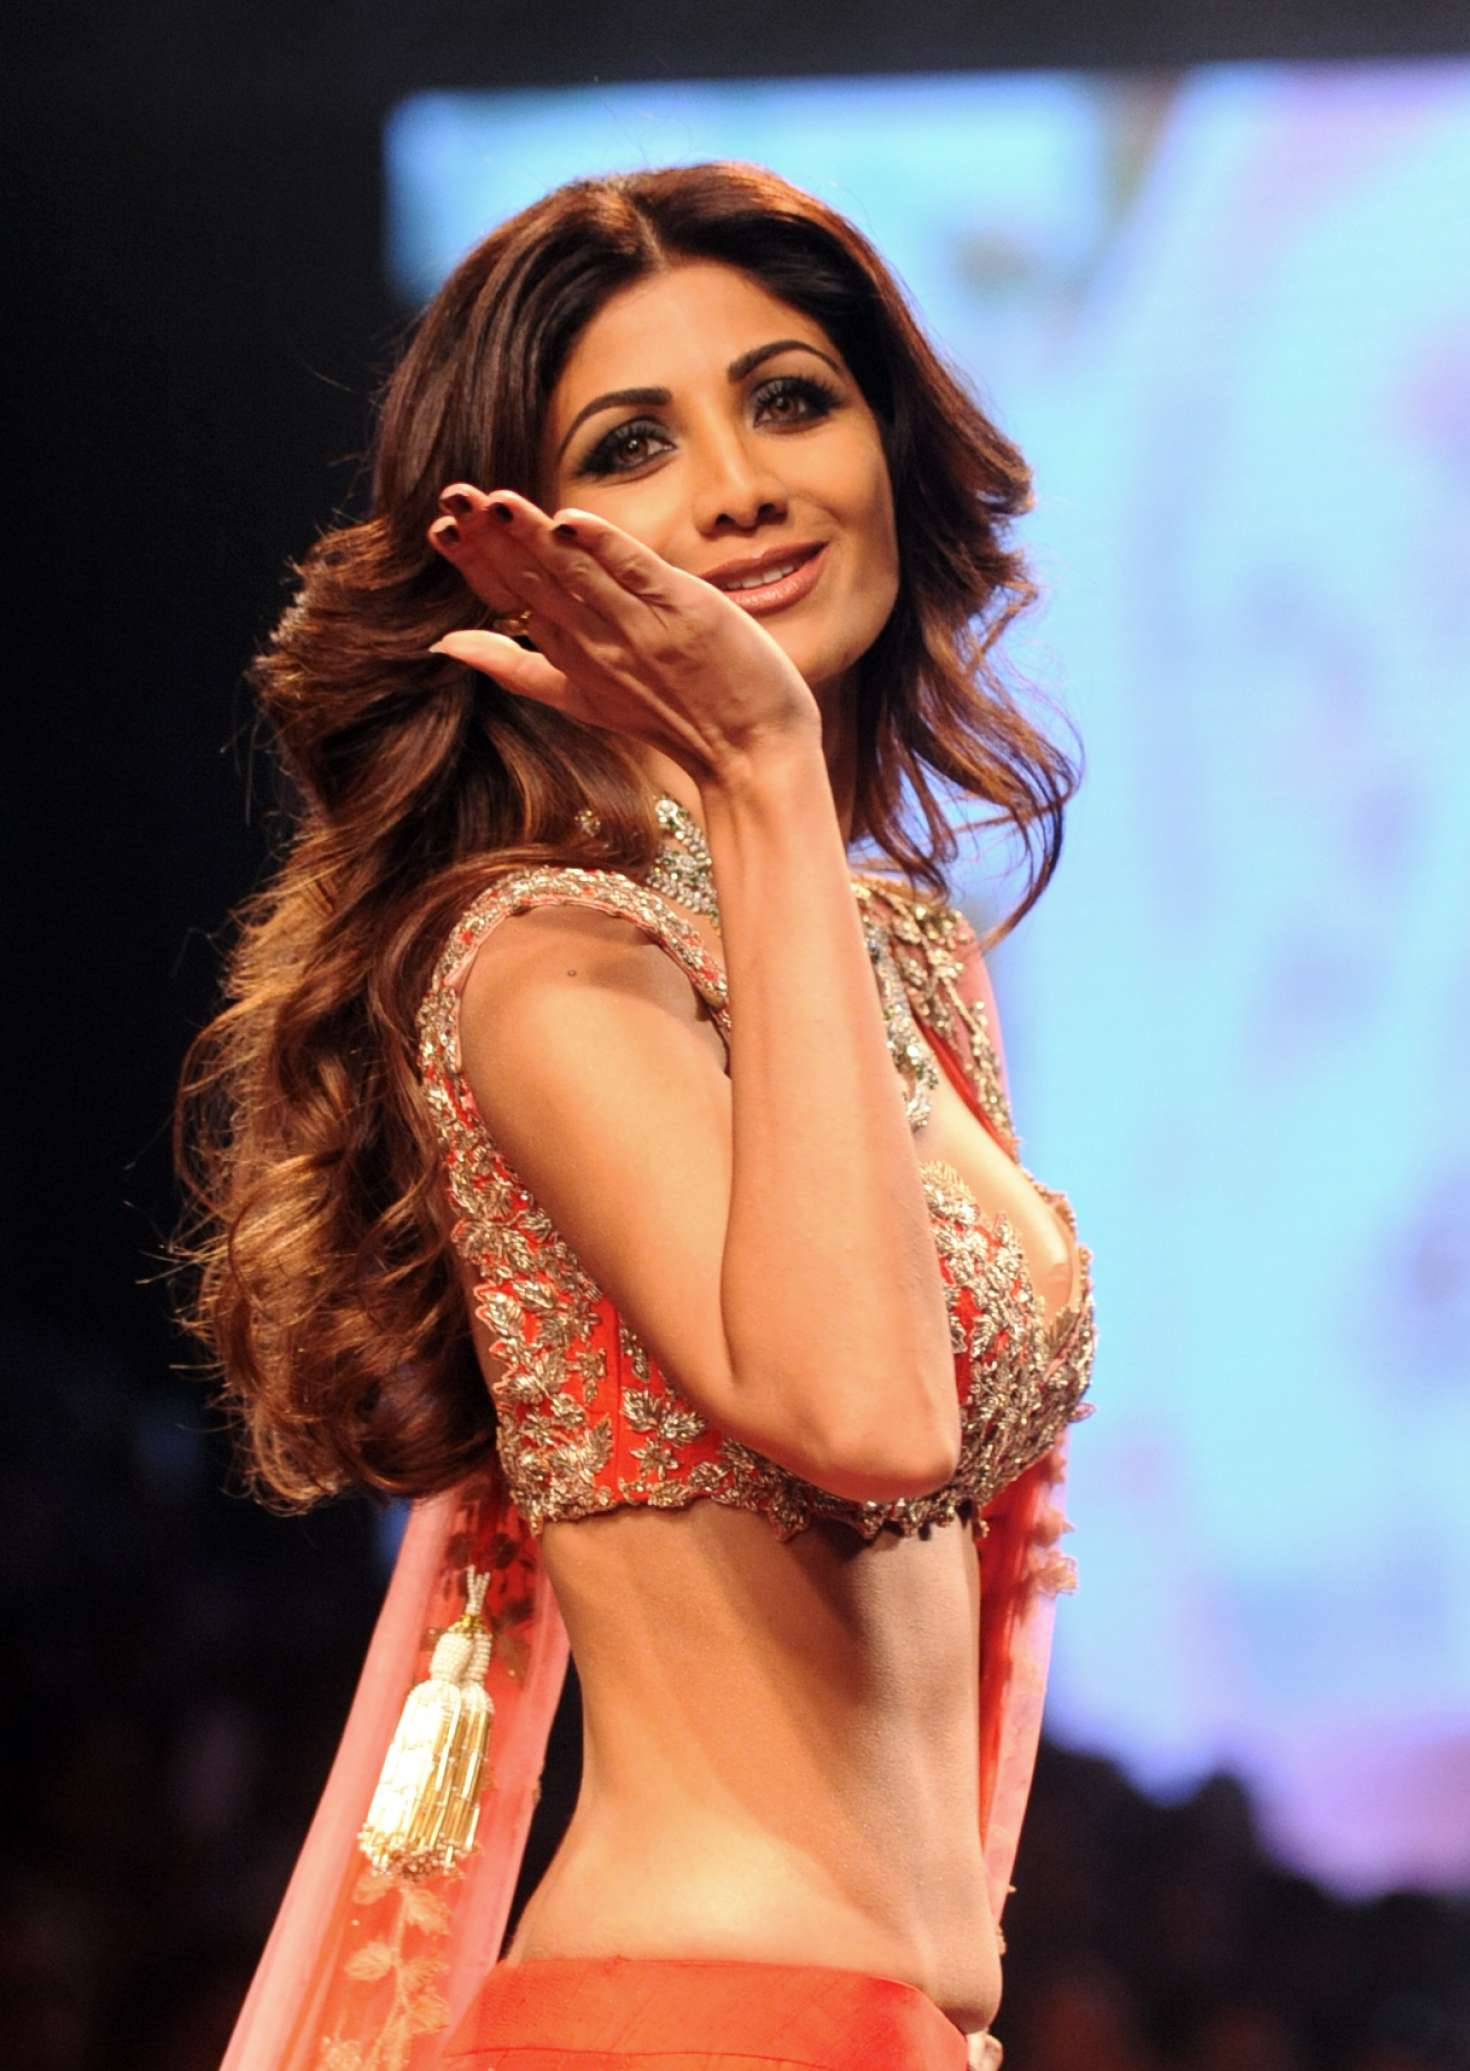 Naked of shilpa shetty, plus size teen girls clothing